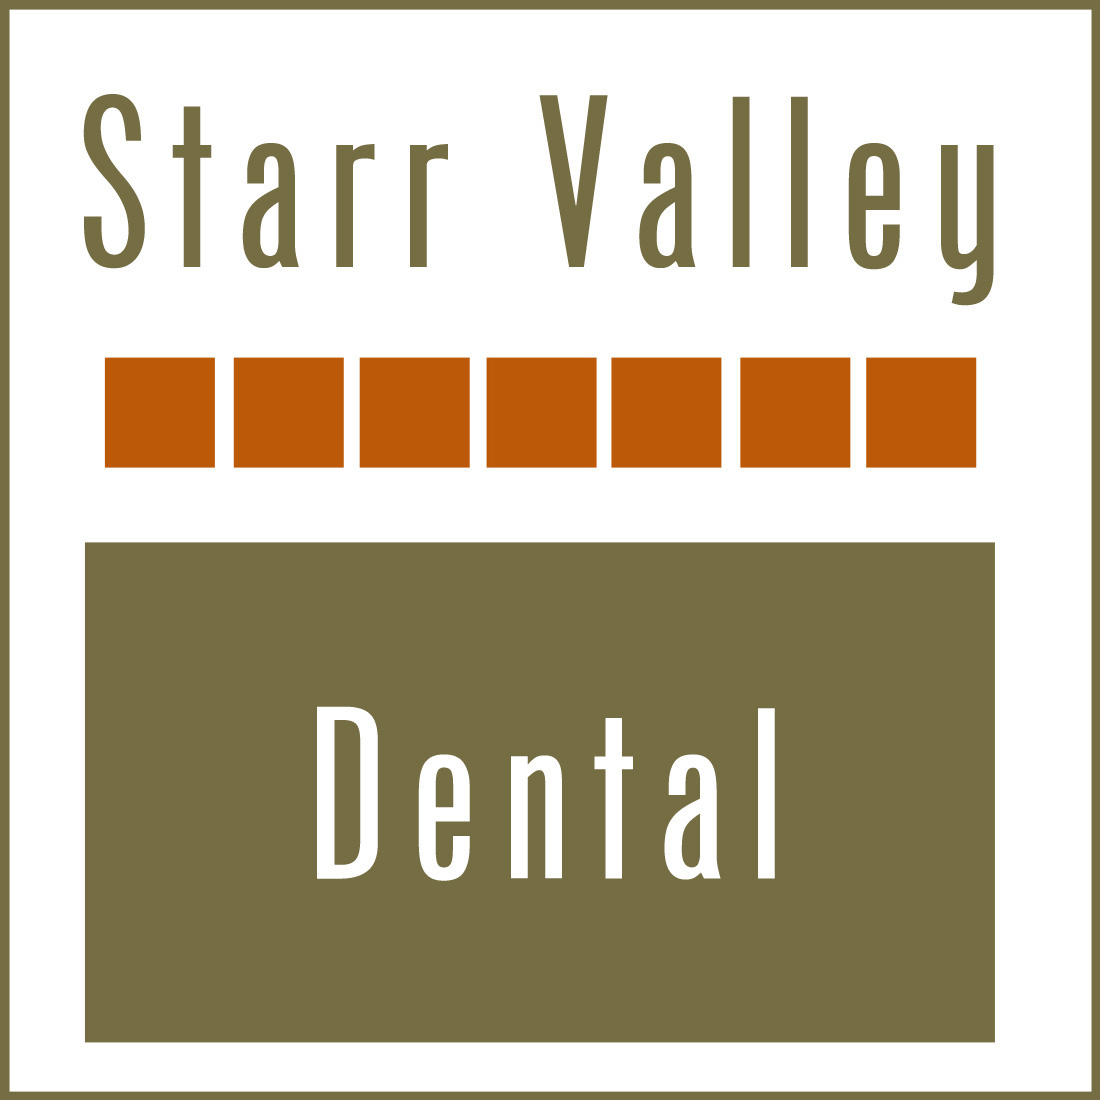 Starr Valley Dental